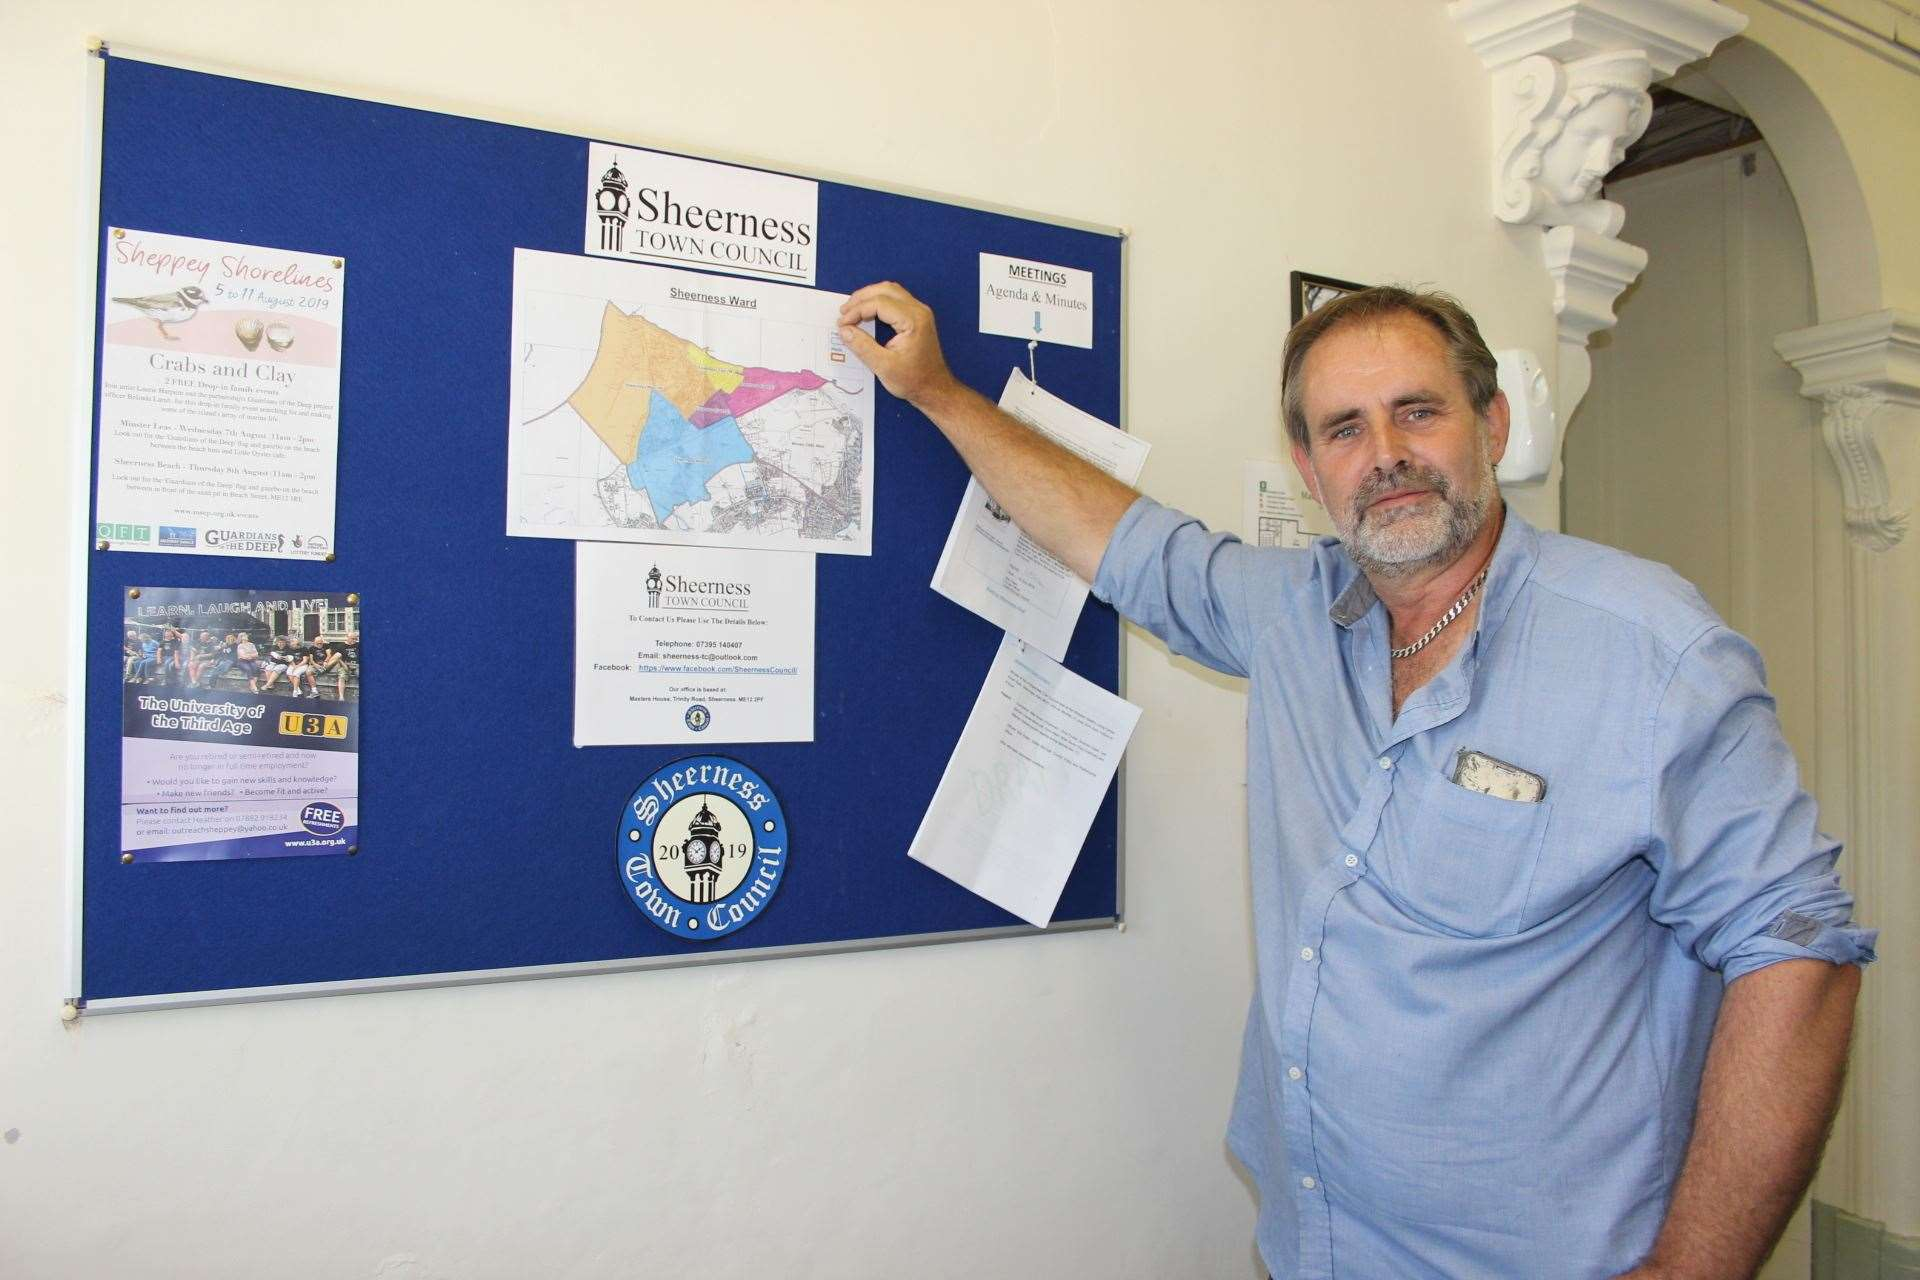 Sheerness Town Council chairman Matt Brown with the new notice board in the council offices in Trinity Road, Sheerness (15153549)